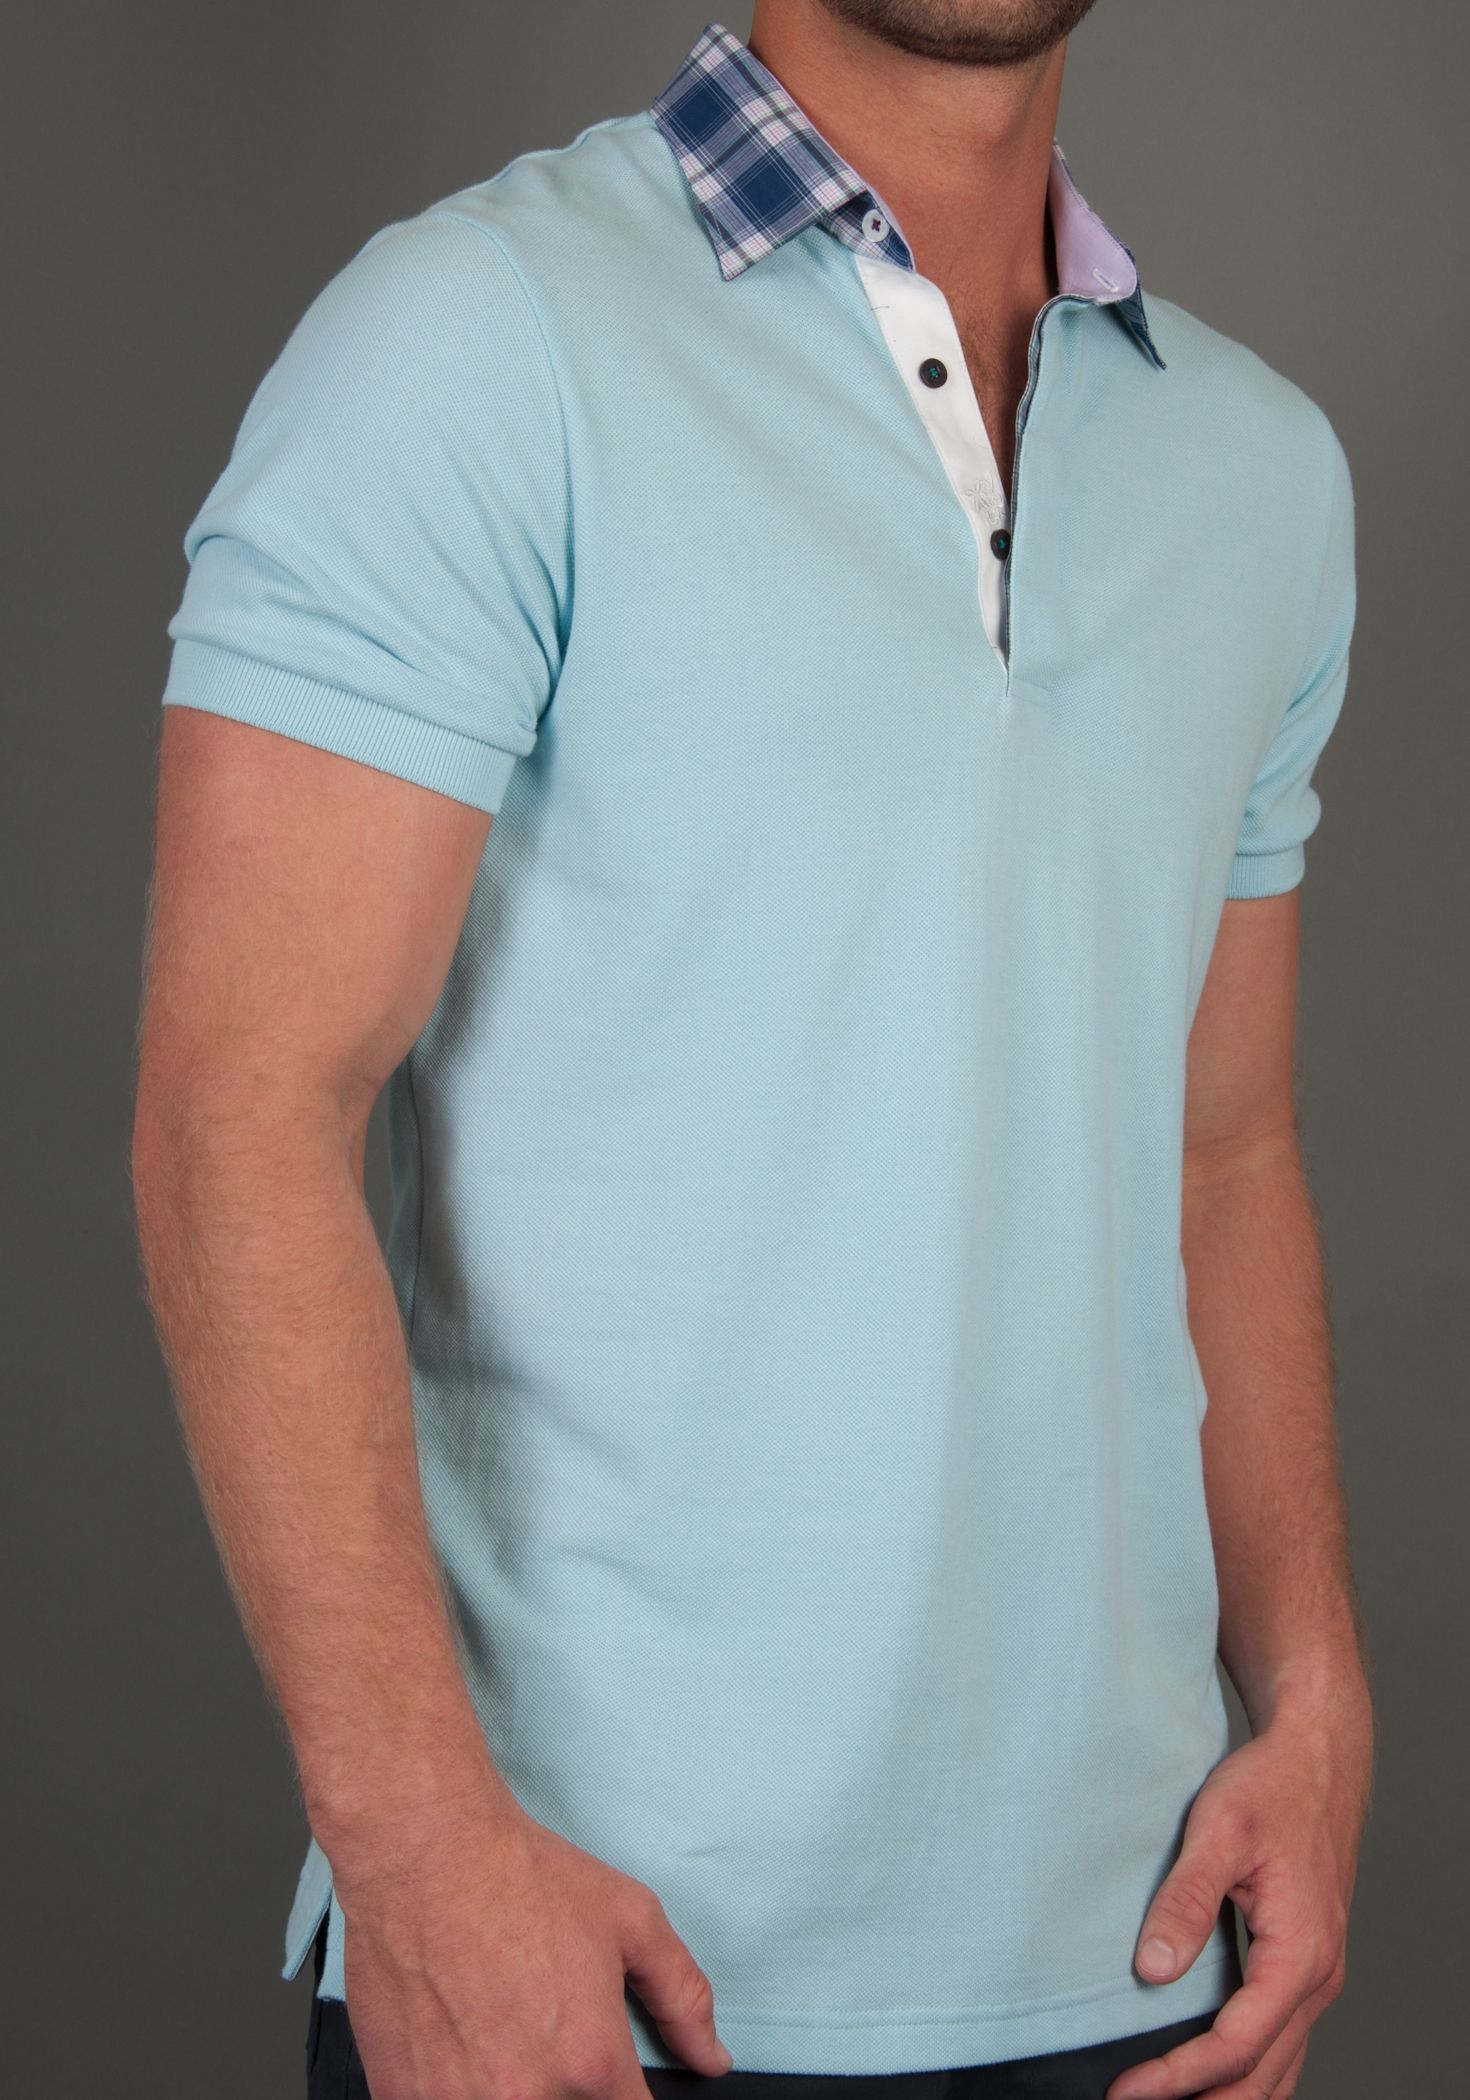 Mens polo shirts a pastel blue polo shirt fitted body for Mens button collar shirts